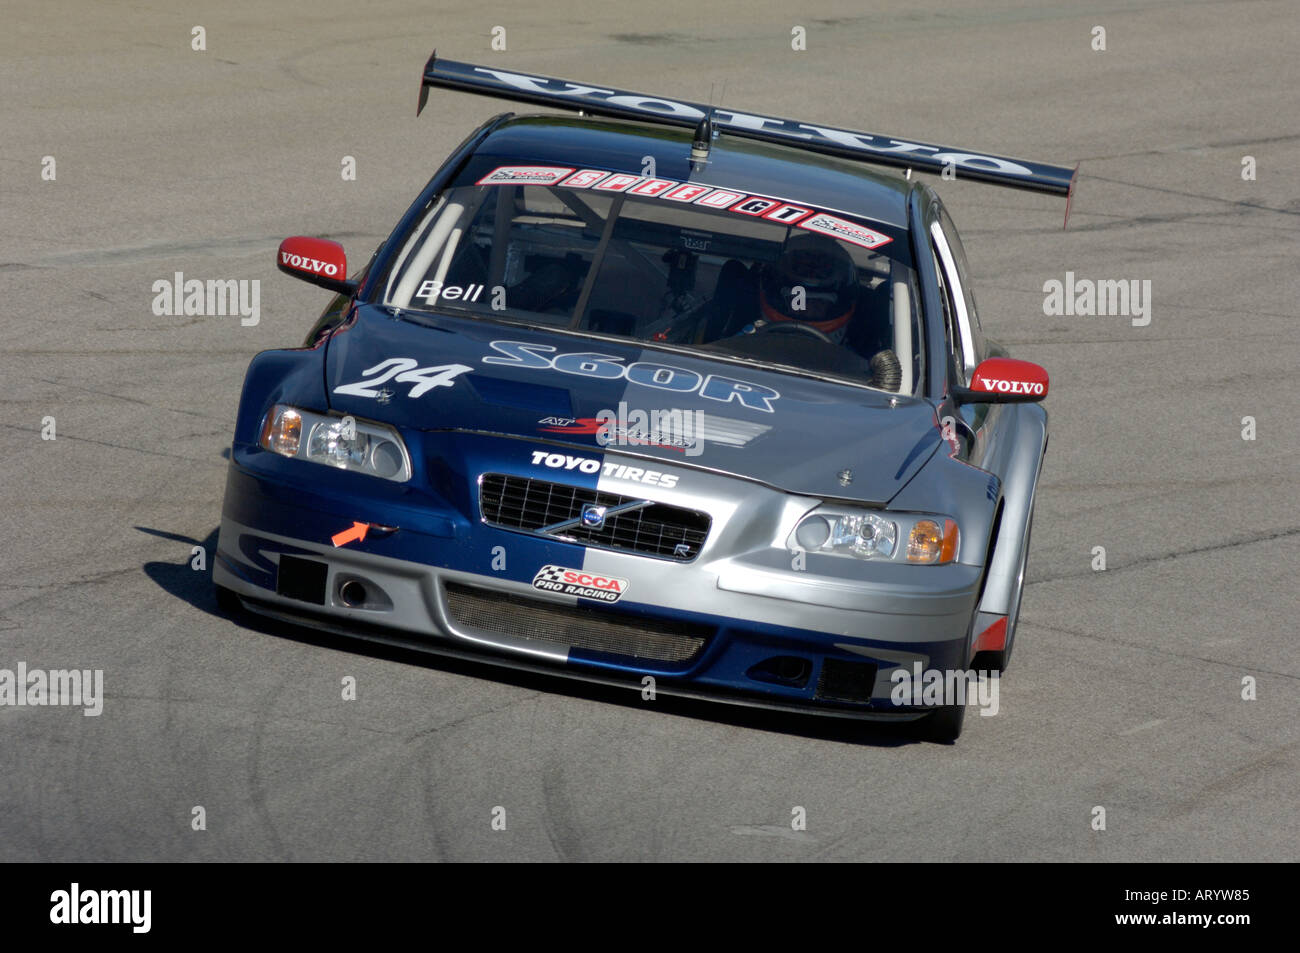 Mid Ohio Sportscar Course >> Derek Bell races his Volvo S60 R at the Speed World Challenge GT race Stock Photo, Royalty Free ...